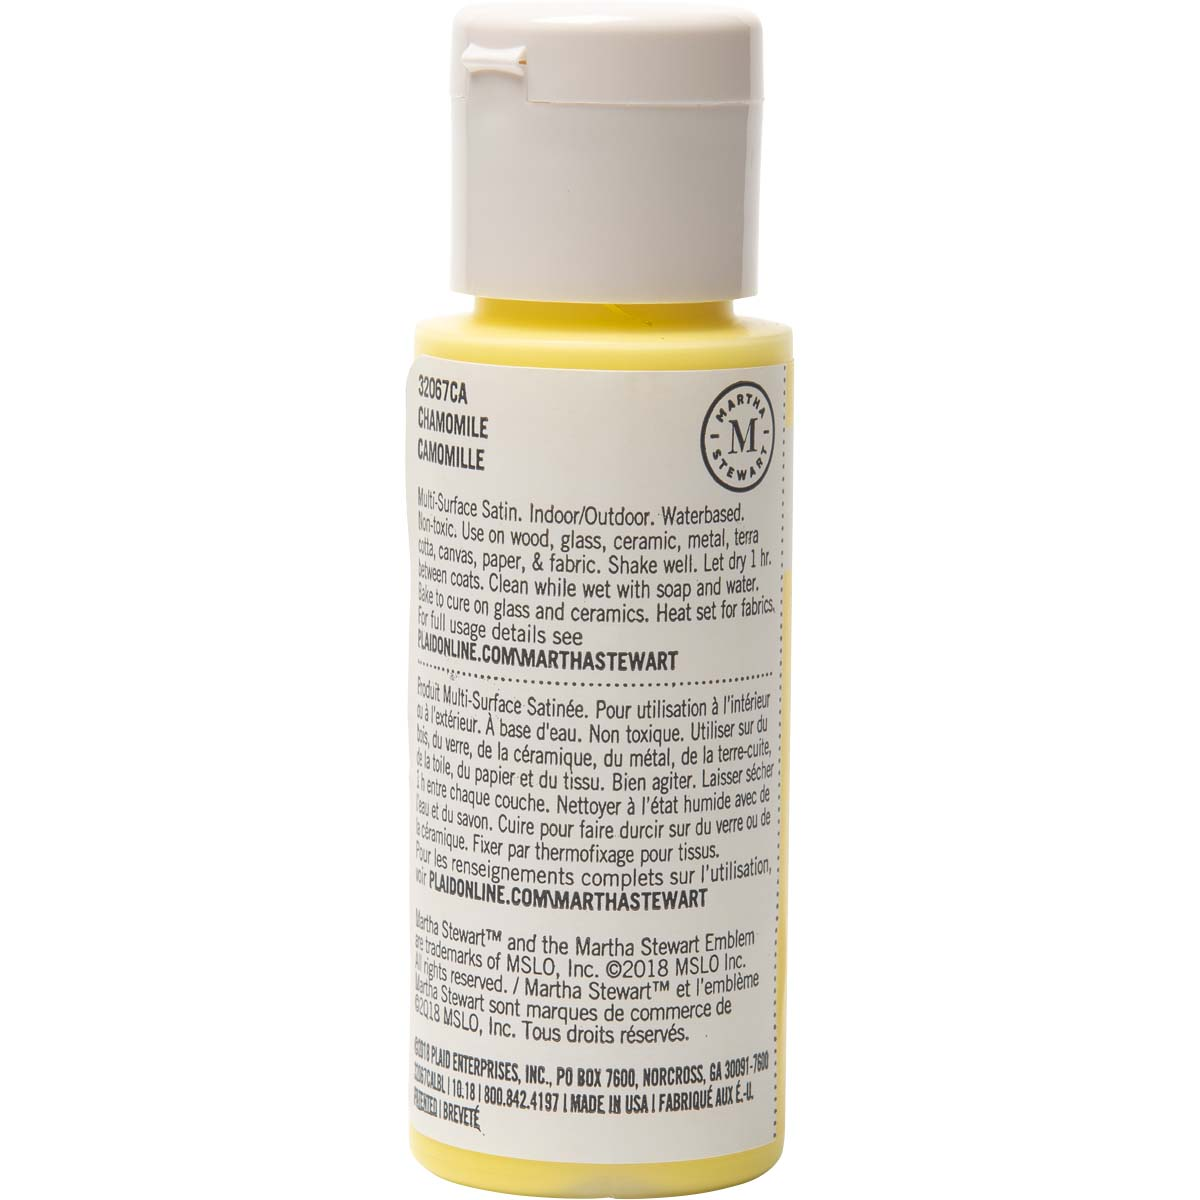 Martha Stewart ® Multi-Surface Satin Acrylic Craft Paint - Chamomile, 2 oz. - 32067CA